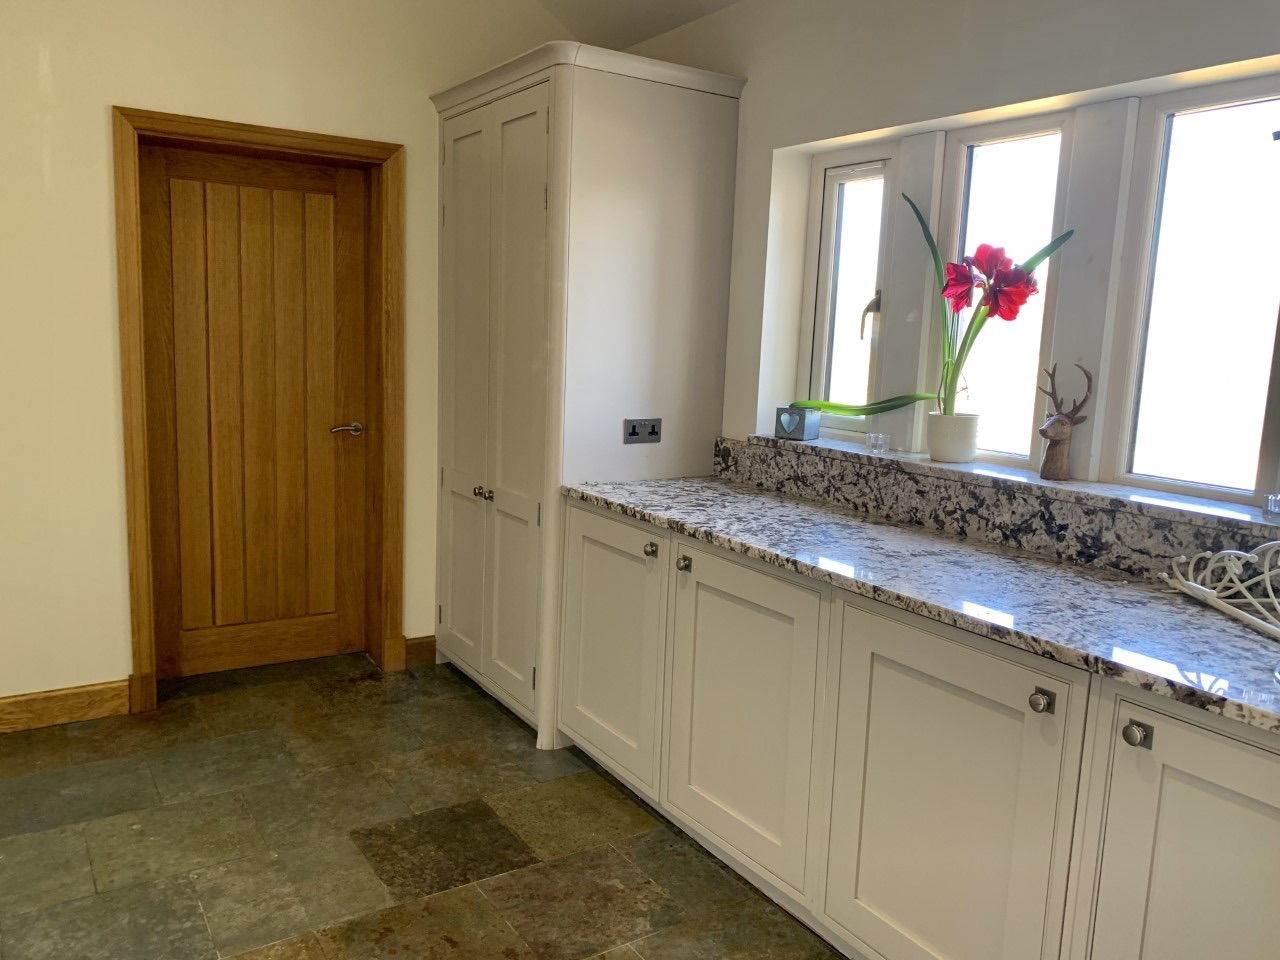 3 bedroom detached house For Sale in Todmorden - Photograph 16.